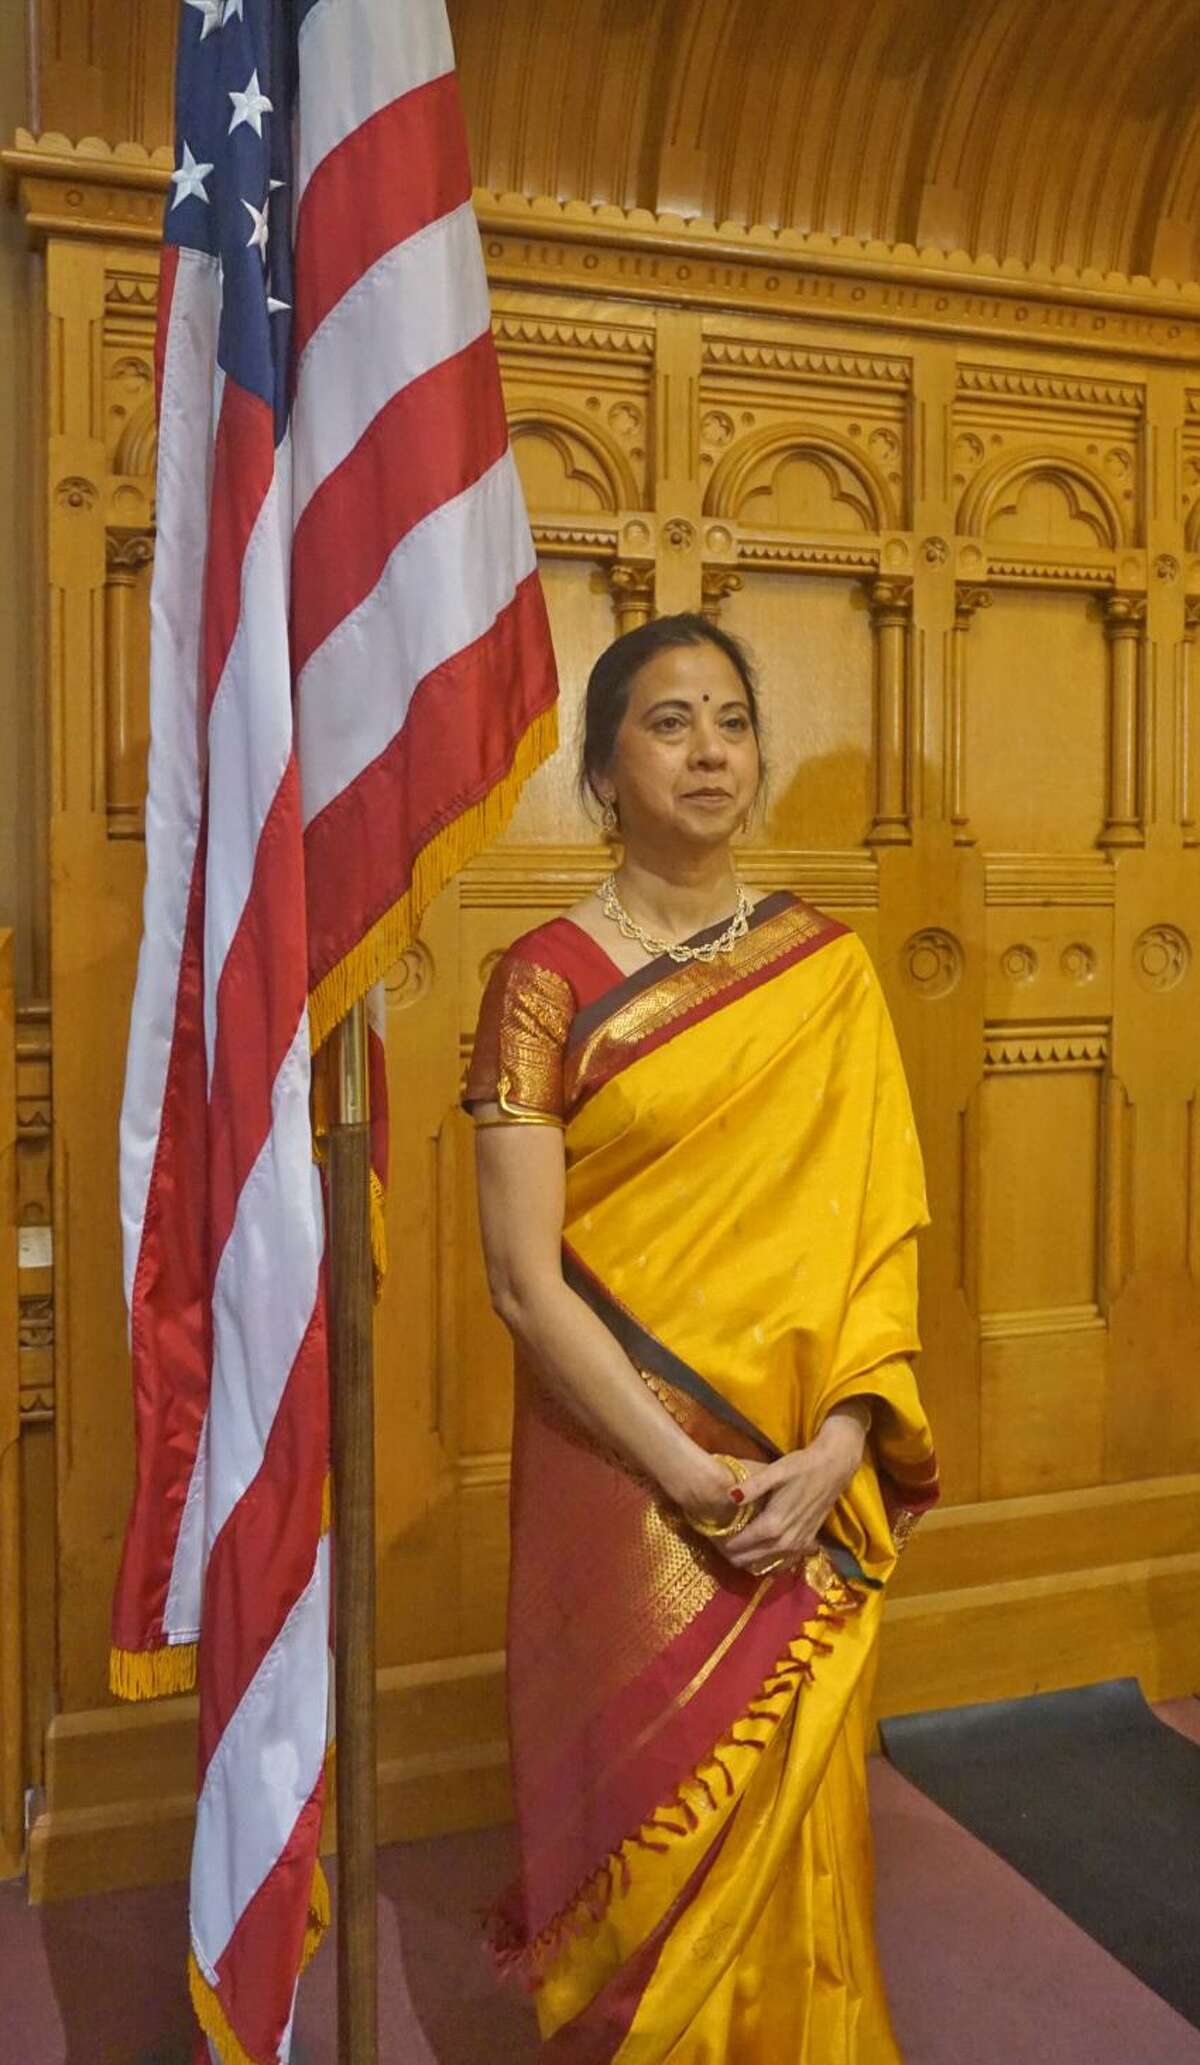 Vani Nidadavolu of Trumbull was honored on Connecticut Immigrant Day, Wednesday April 4, 2018, at the Capitol in Hartford, Conn. for teaching Indian-Americans tradition Indian dance forms.